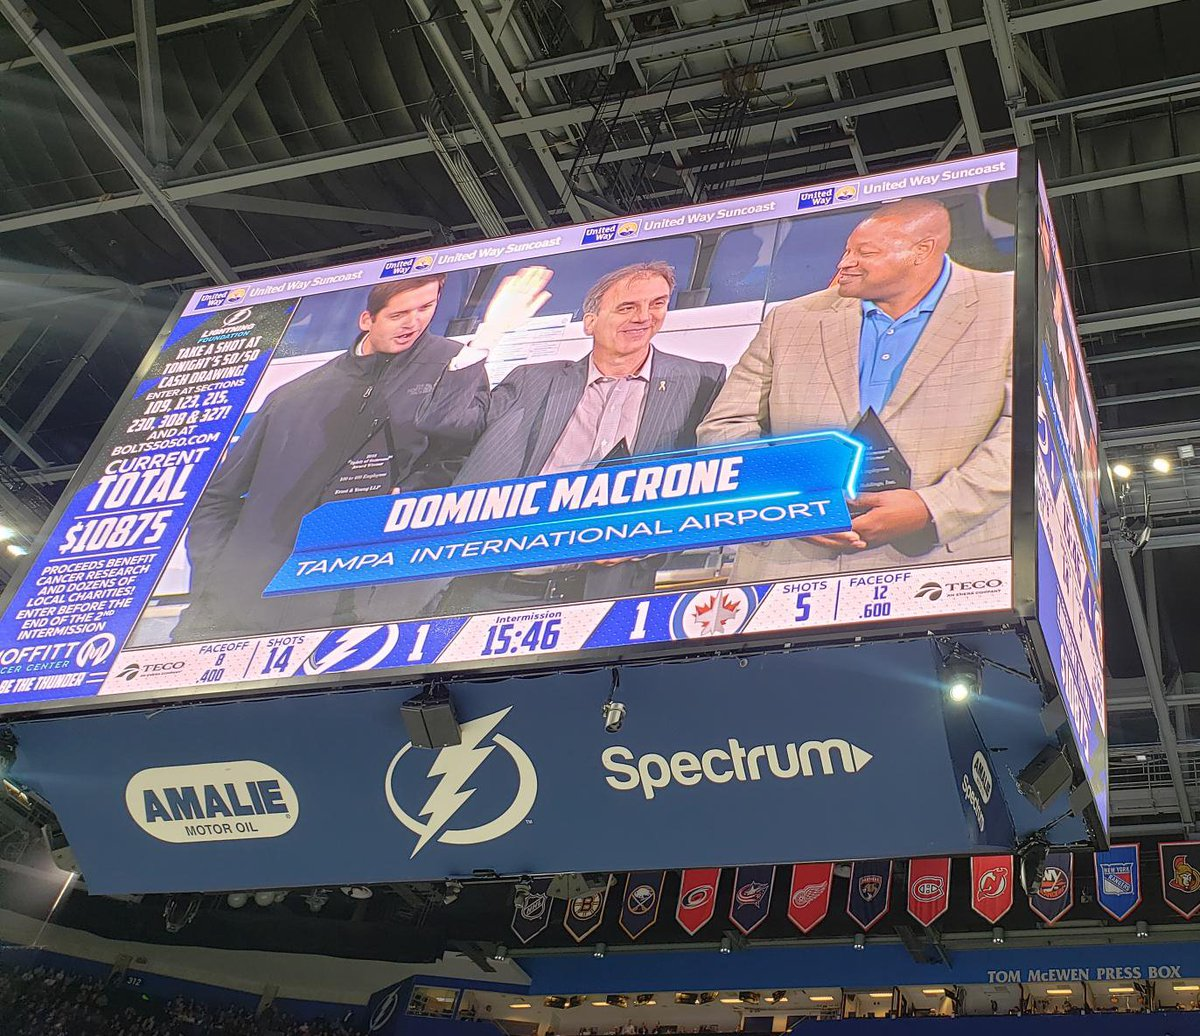 Last night, we were proud to accept the @UWSuncoast Spirit of Suncoast Award at none other than the @TBLightning game! The Hillsborough County Aviation Authority was selected as the 2018 award winner for it&#39;s exceptional commitment and investment to the community. <br>http://pic.twitter.com/BjWysUUYYL